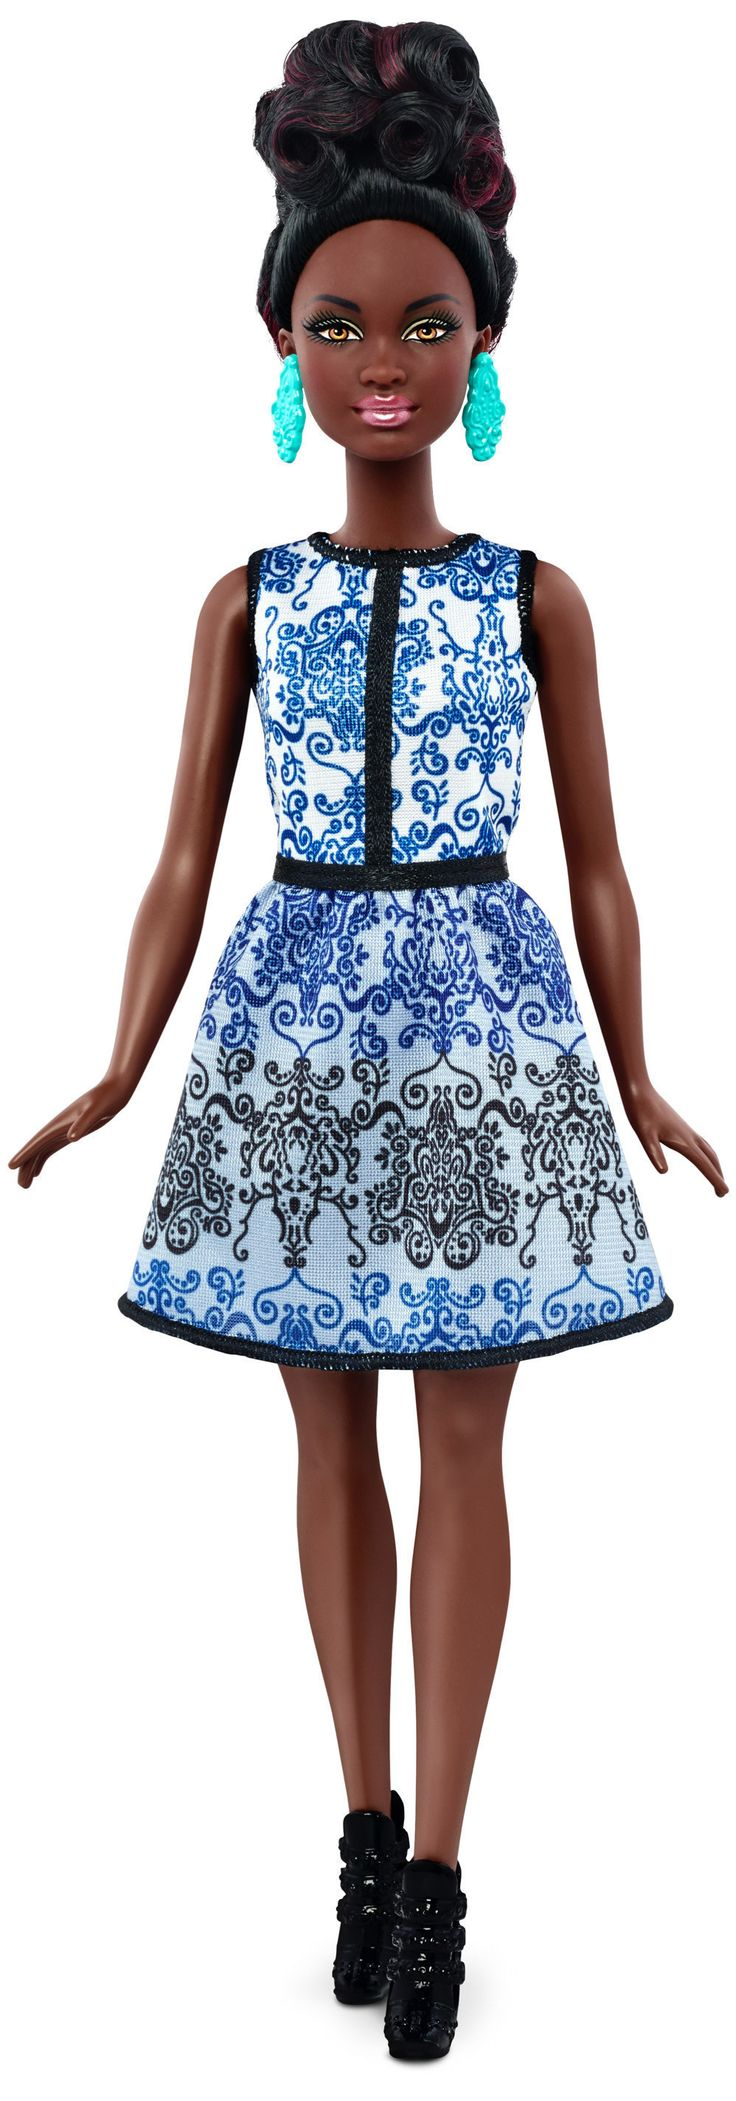 Find great deals on ebay for barbie hair extensions doll barbie light - Buy Barbie Fashionistas Doll 25 Blue Brocade Petite At Yoyo